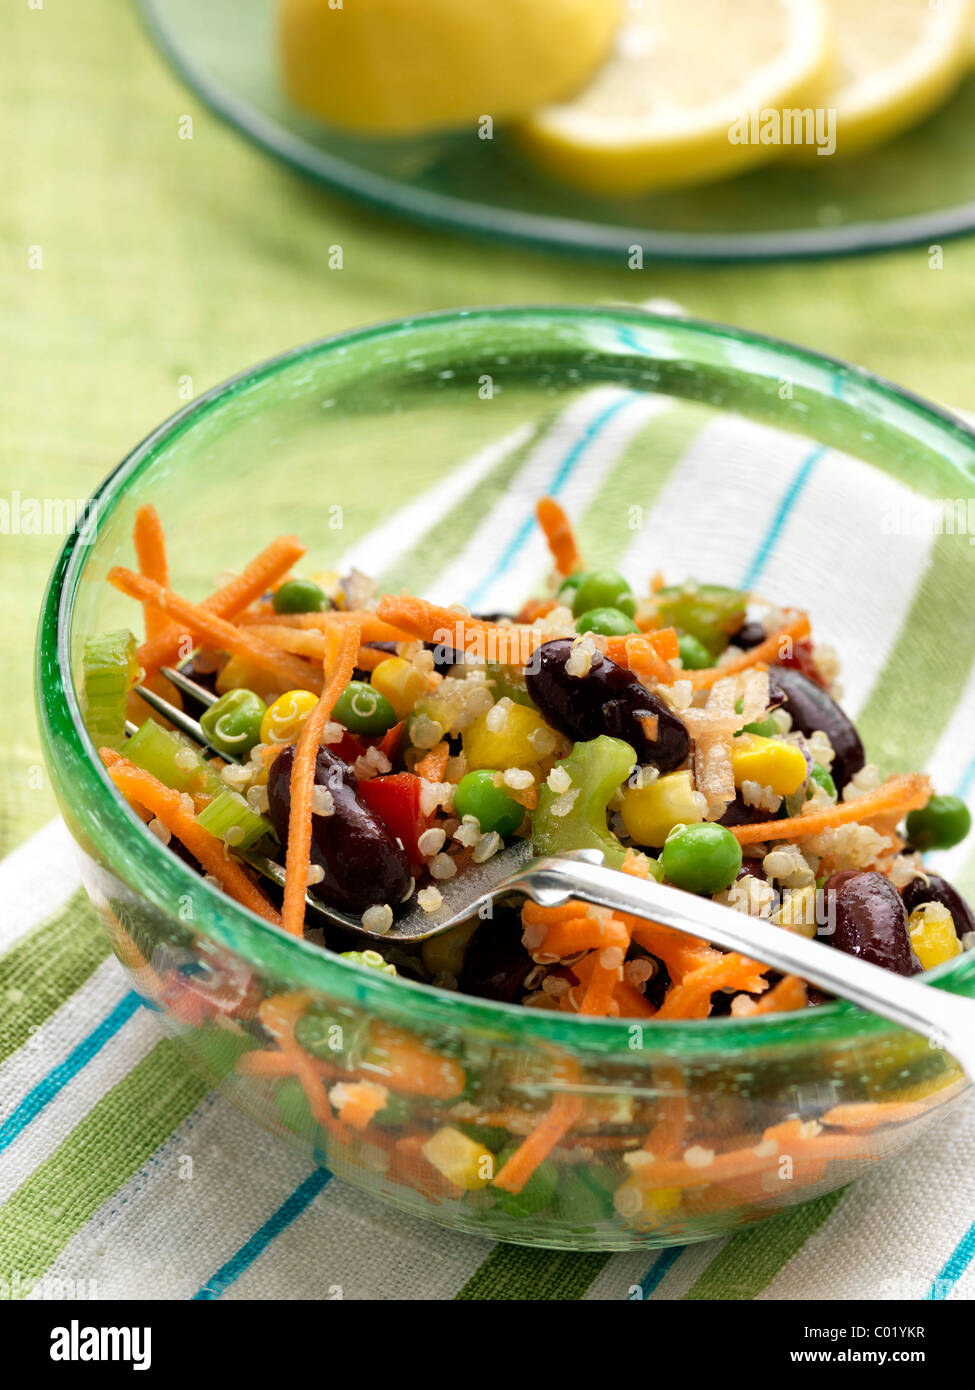 Vegetarian Quinoa Salad With Peas Carrots Celery Red Kidney Beans Stock Photo Alamy